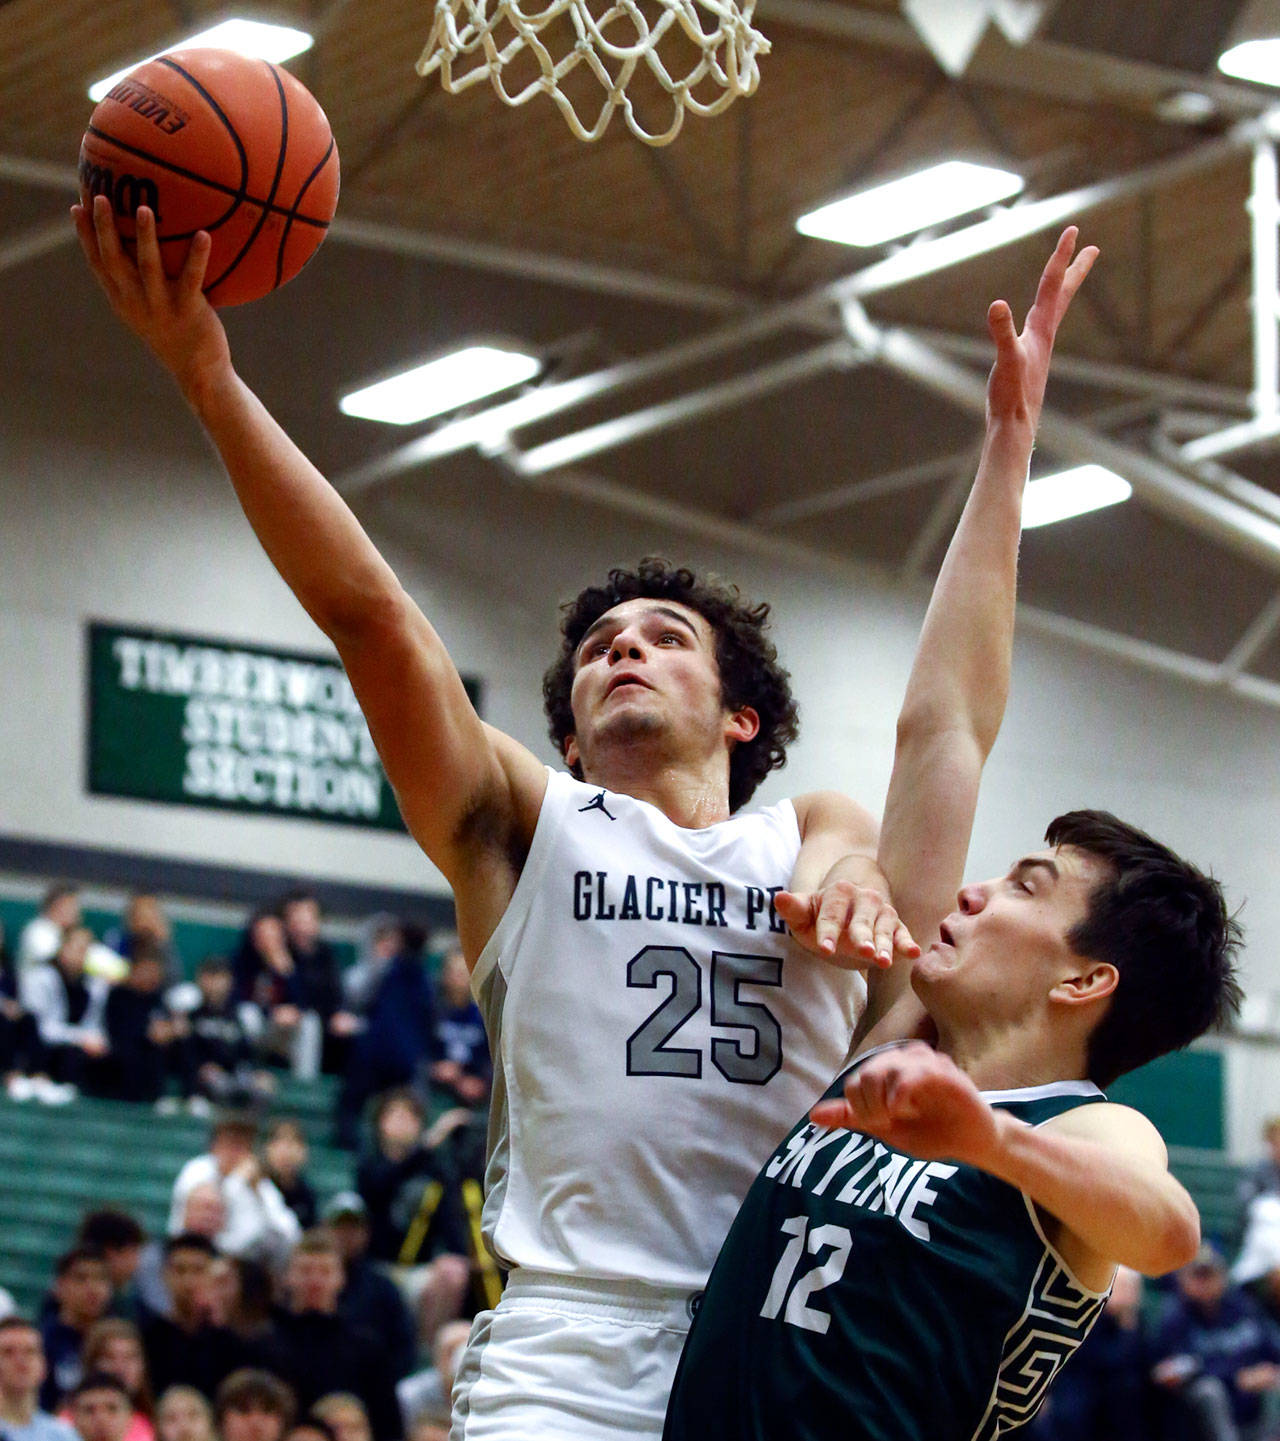 Glacier Peak's Brayden Quantrille (25) drives for a layup with Skyline's Zach Ulmer trailing during a Wes-King Bi-District Tournament game Tuesday evening at Jackson High School in Mill Creek. (Kevin Clark / The Herald)